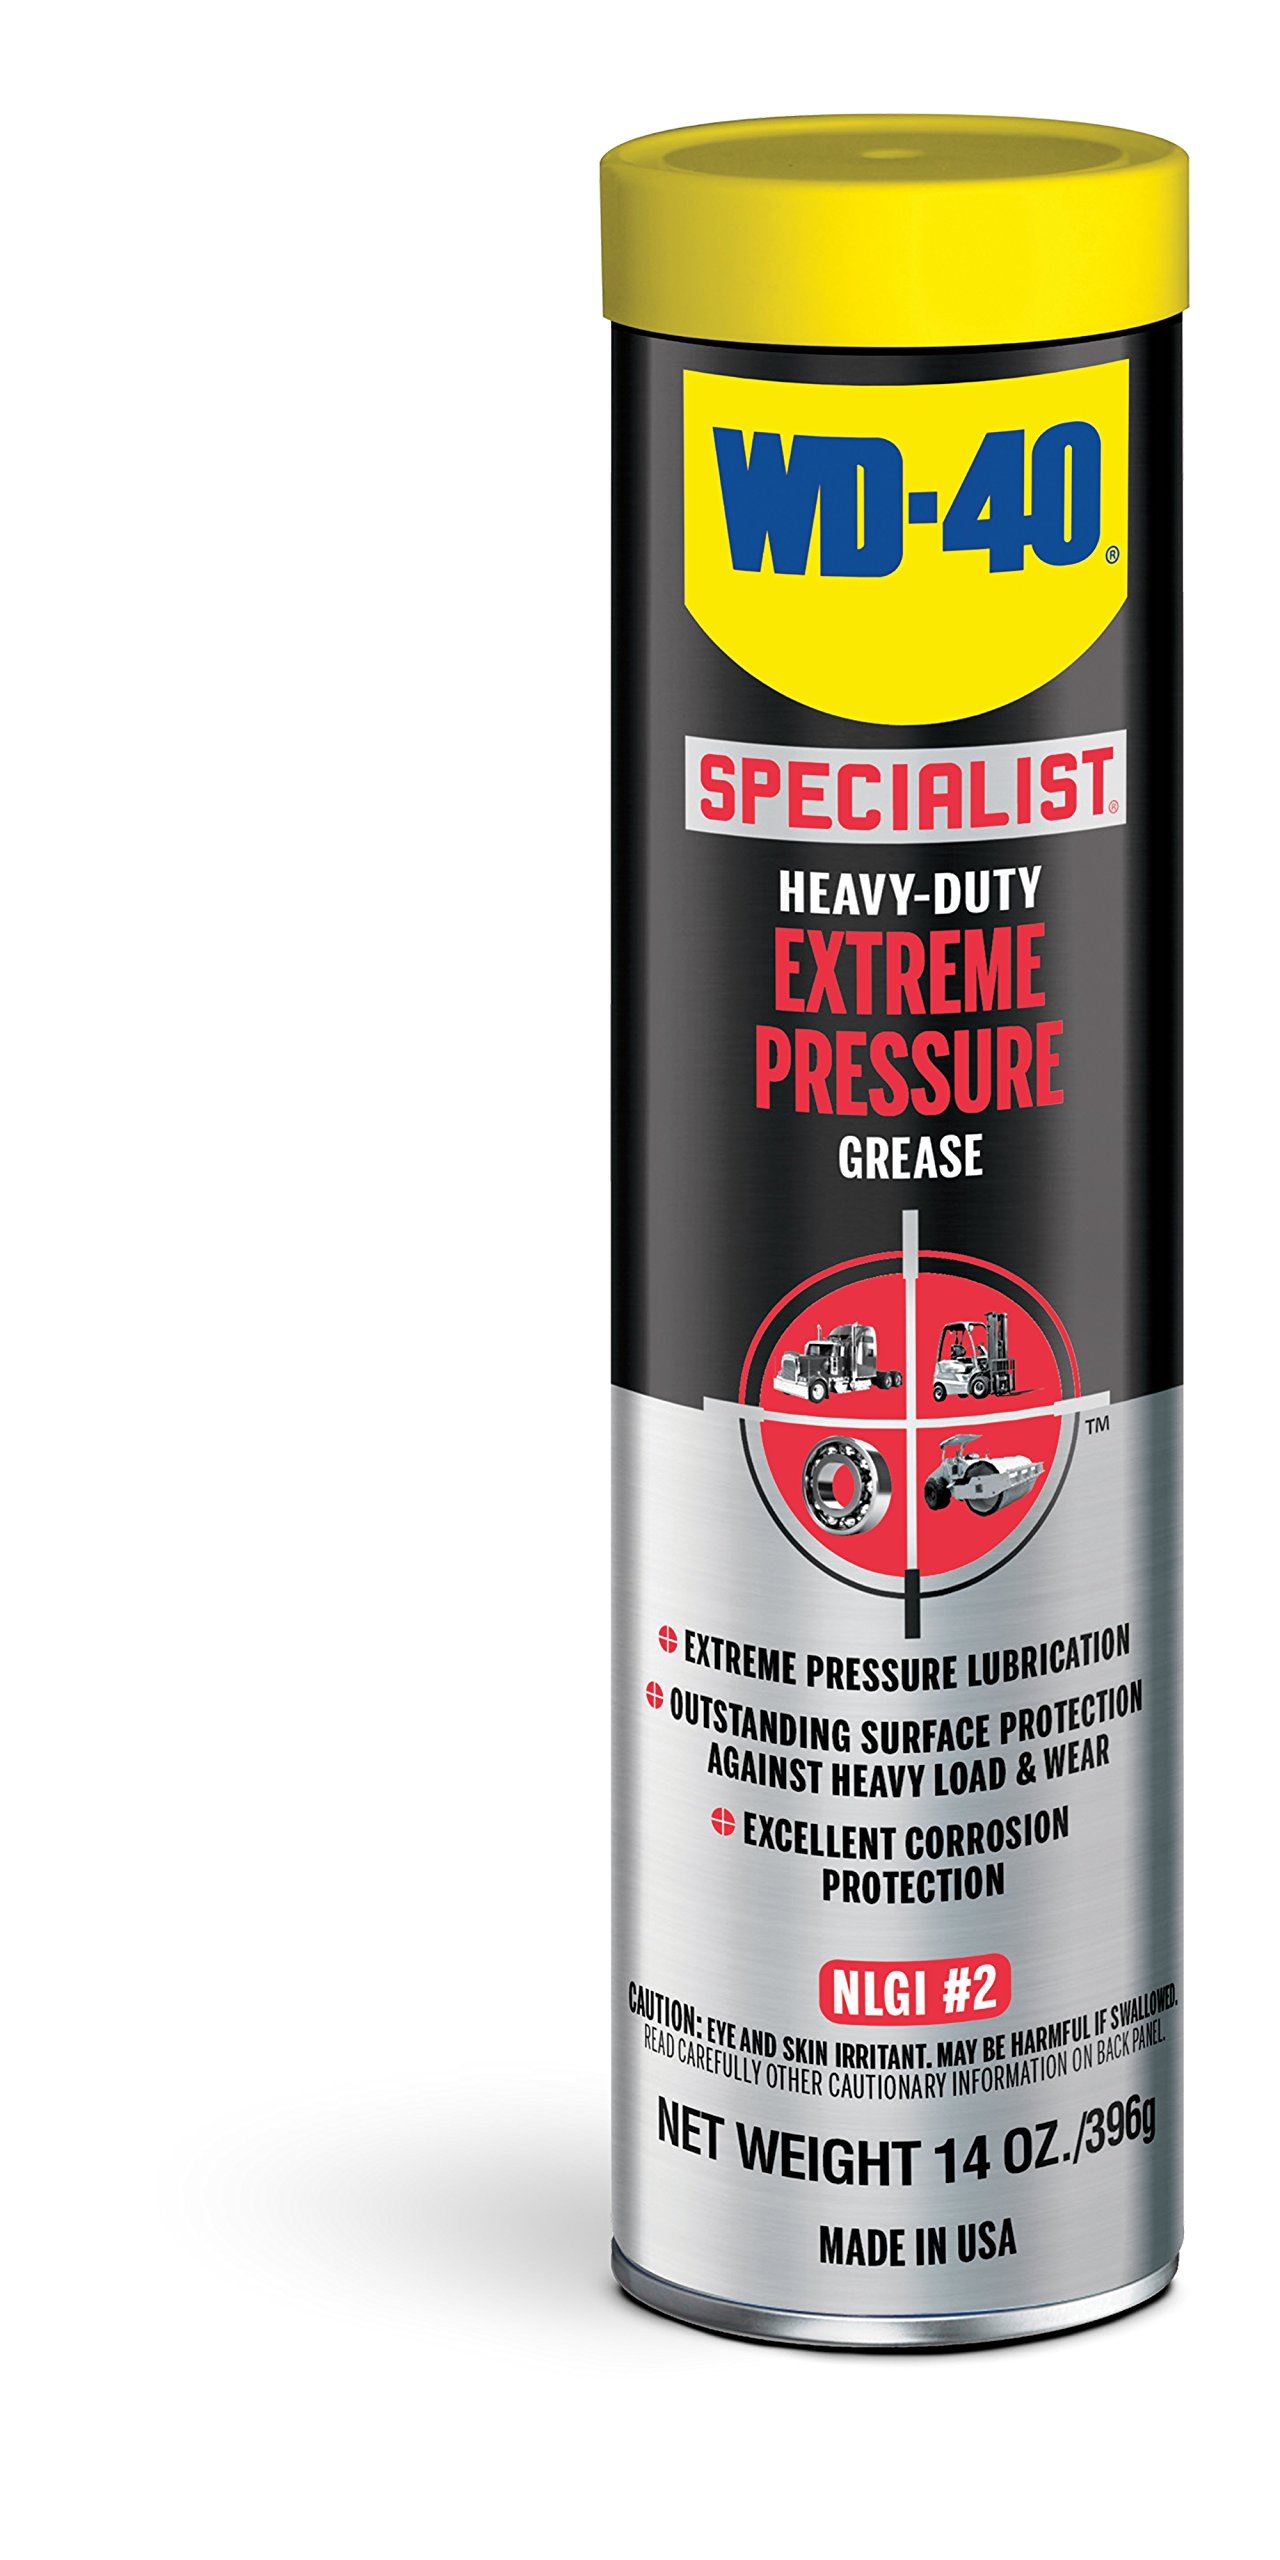 WD-40 Specialist Heavy-Duty Extreme Pressure Grease, 14 OZ [10-Pack]